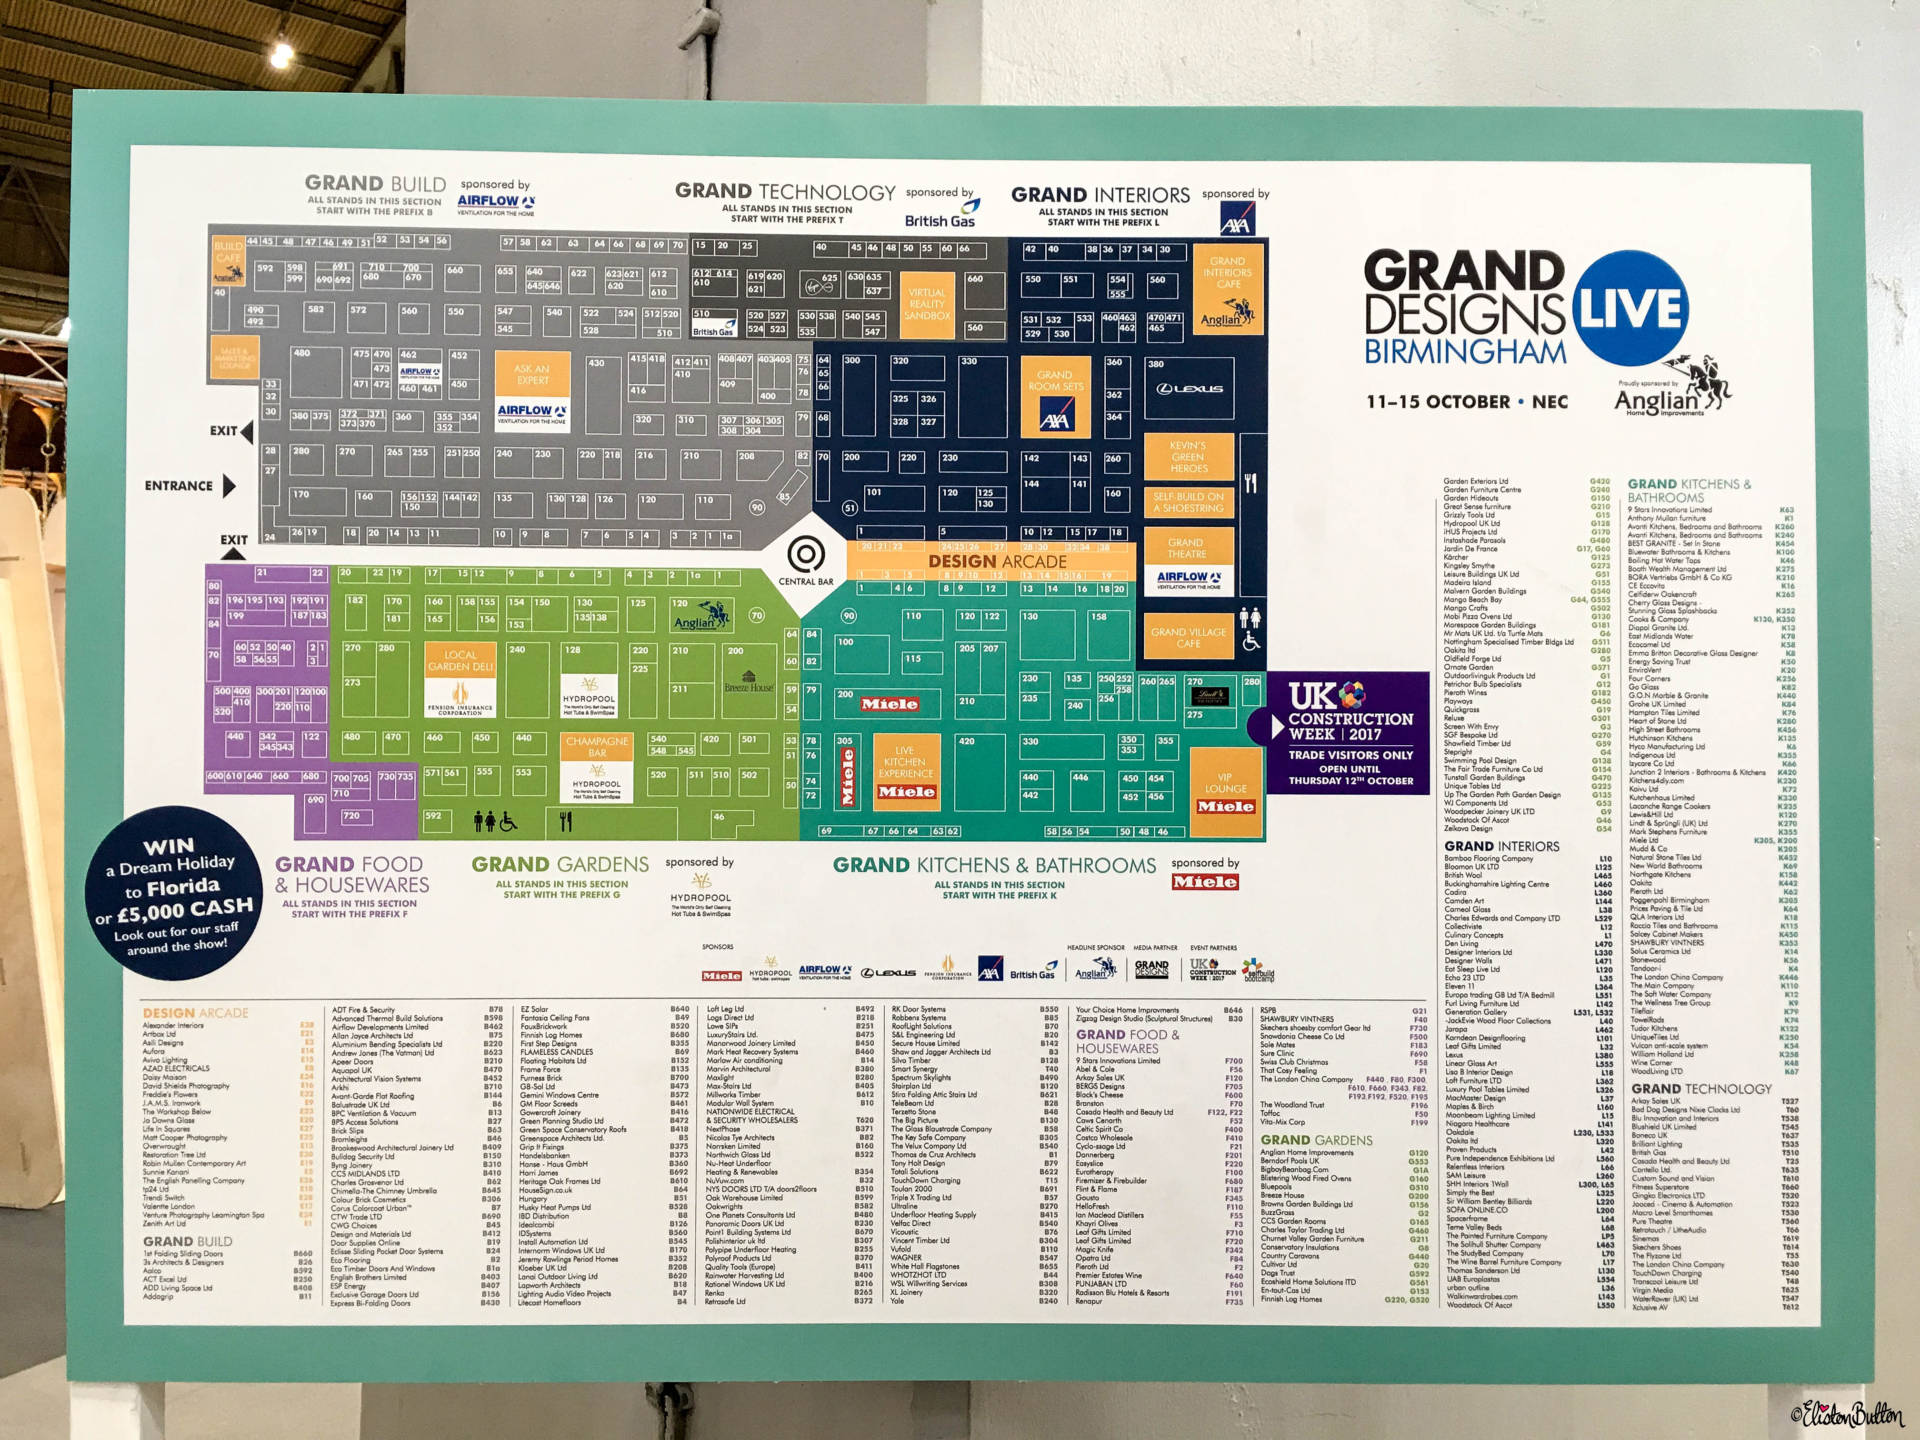 The Big Map of the Show at Grand Designs Live 2017 with Eliston Button - Grand Designs Live 2017 – Part One at www.elistonbutton.com - Eliston Button - That Crafty Kid – Art, Design, Craft & Adventure.